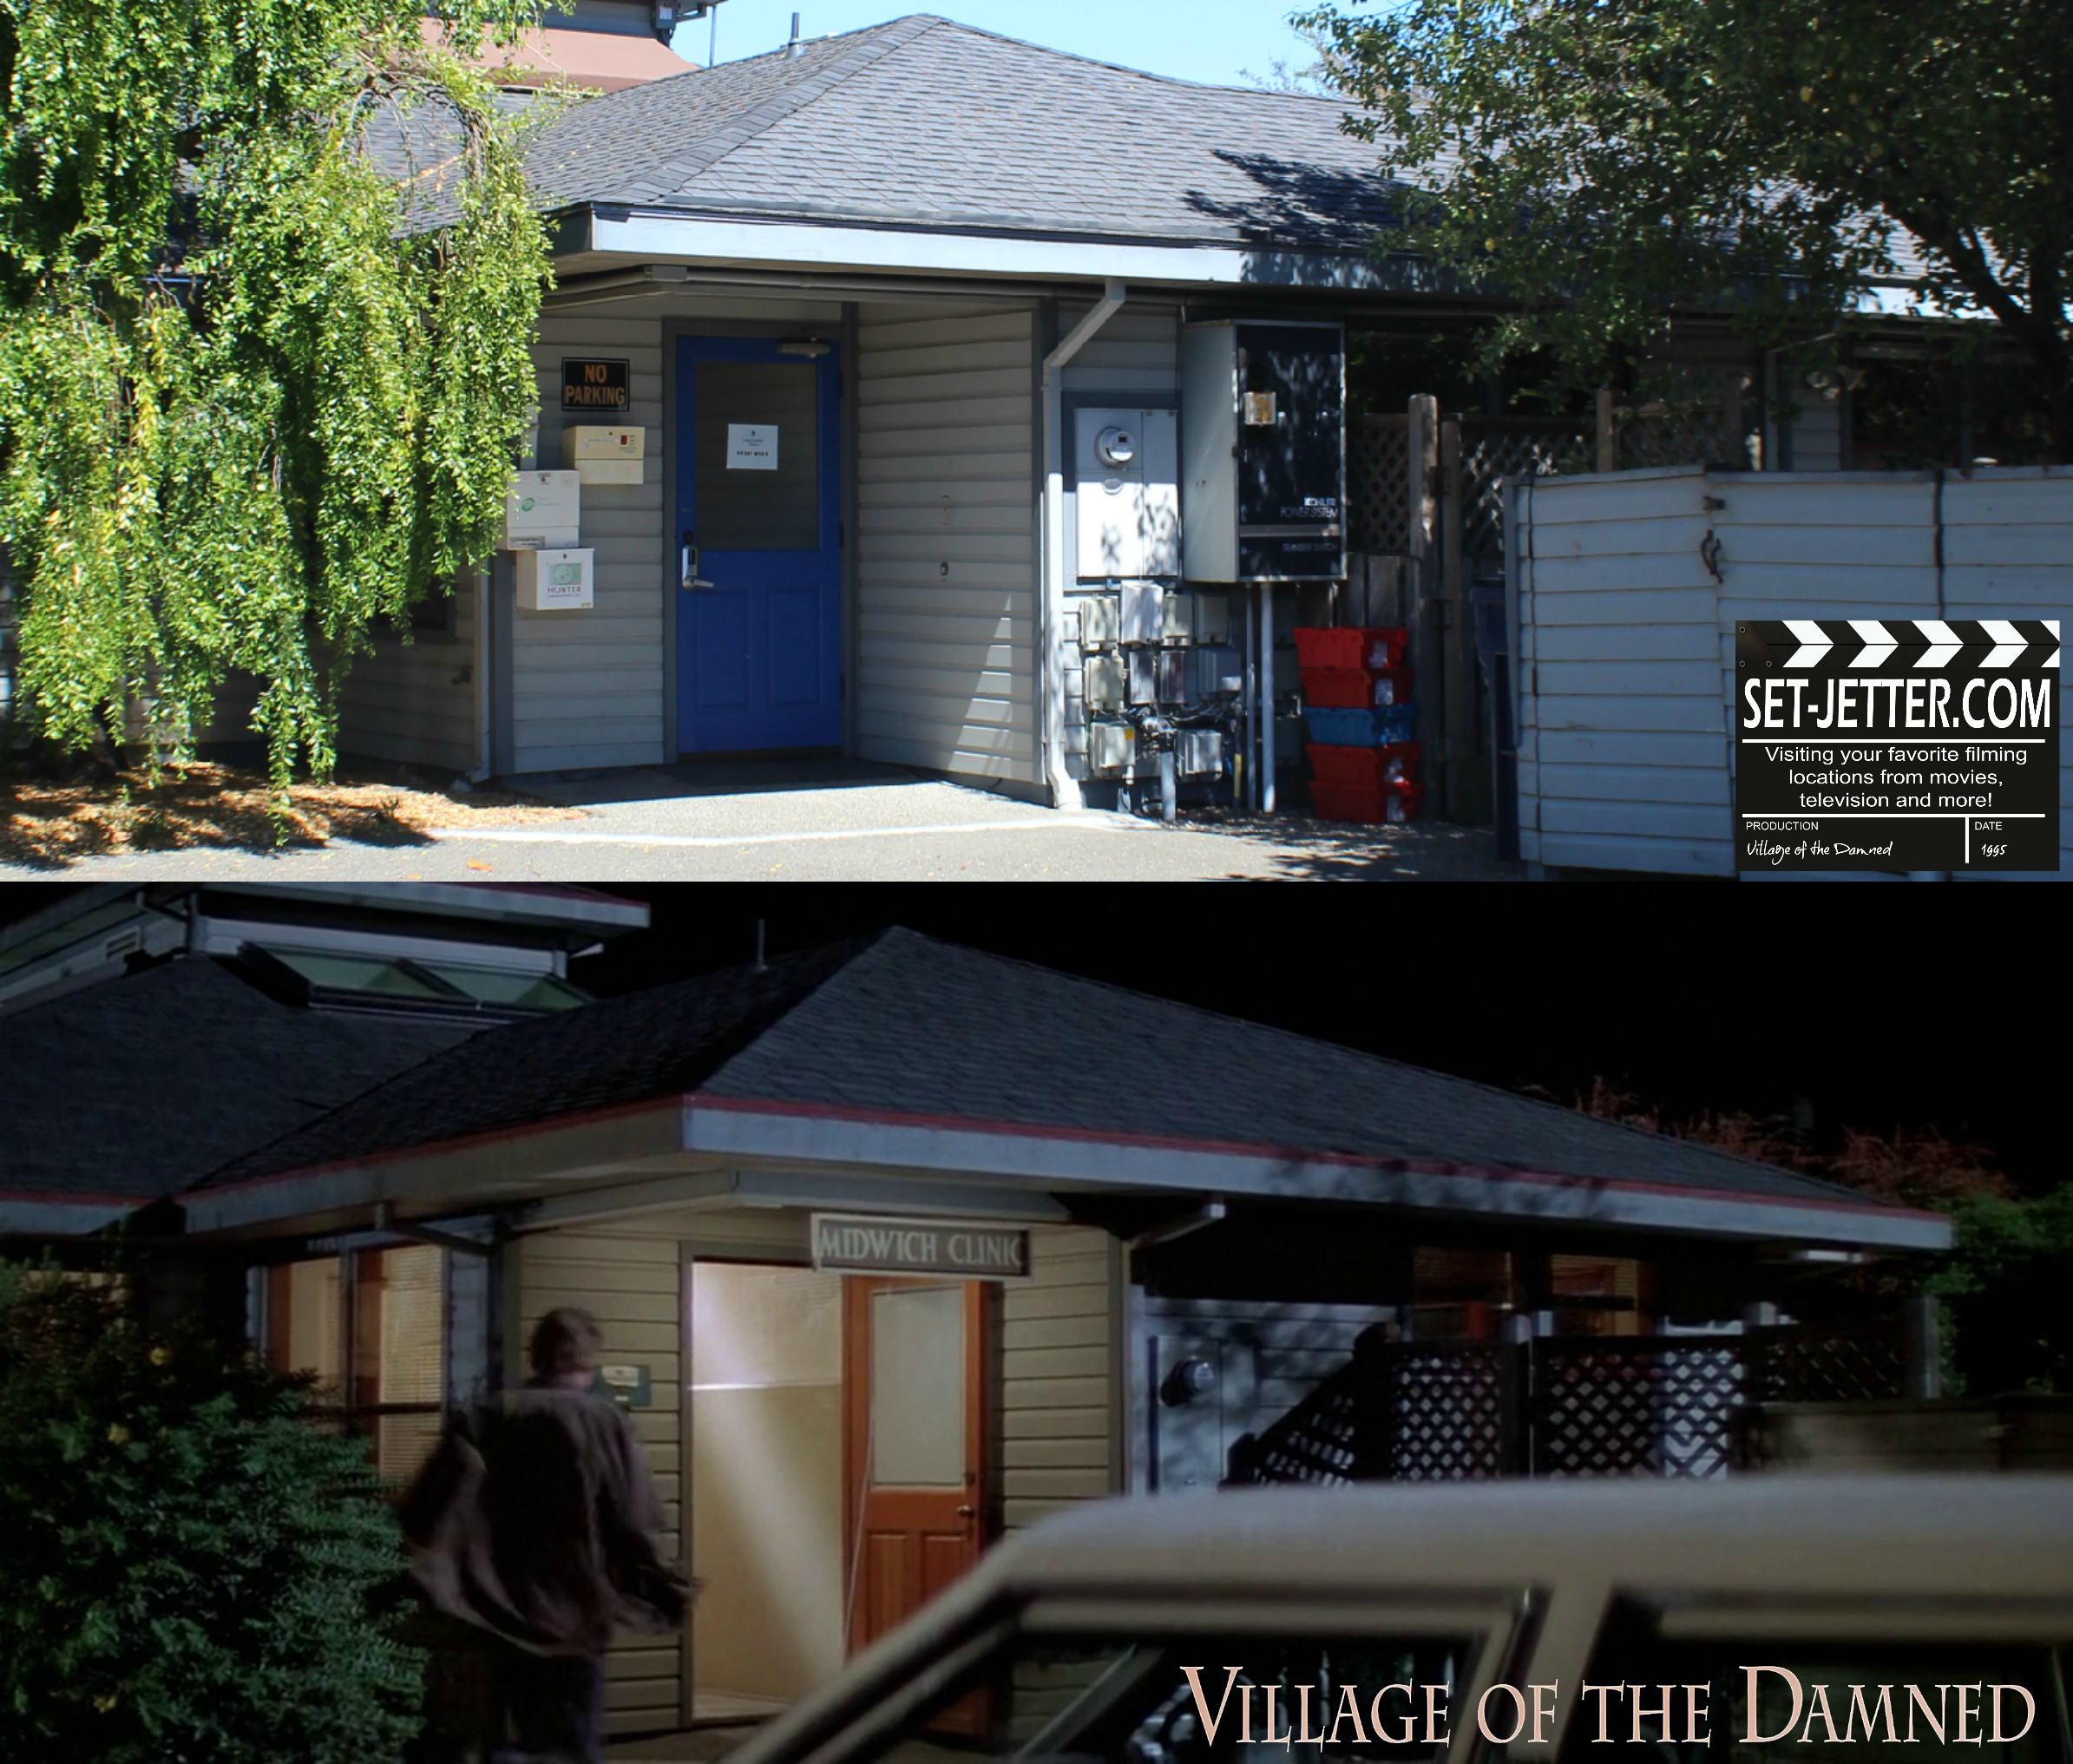 Village of the Damned comparison 144.jpg